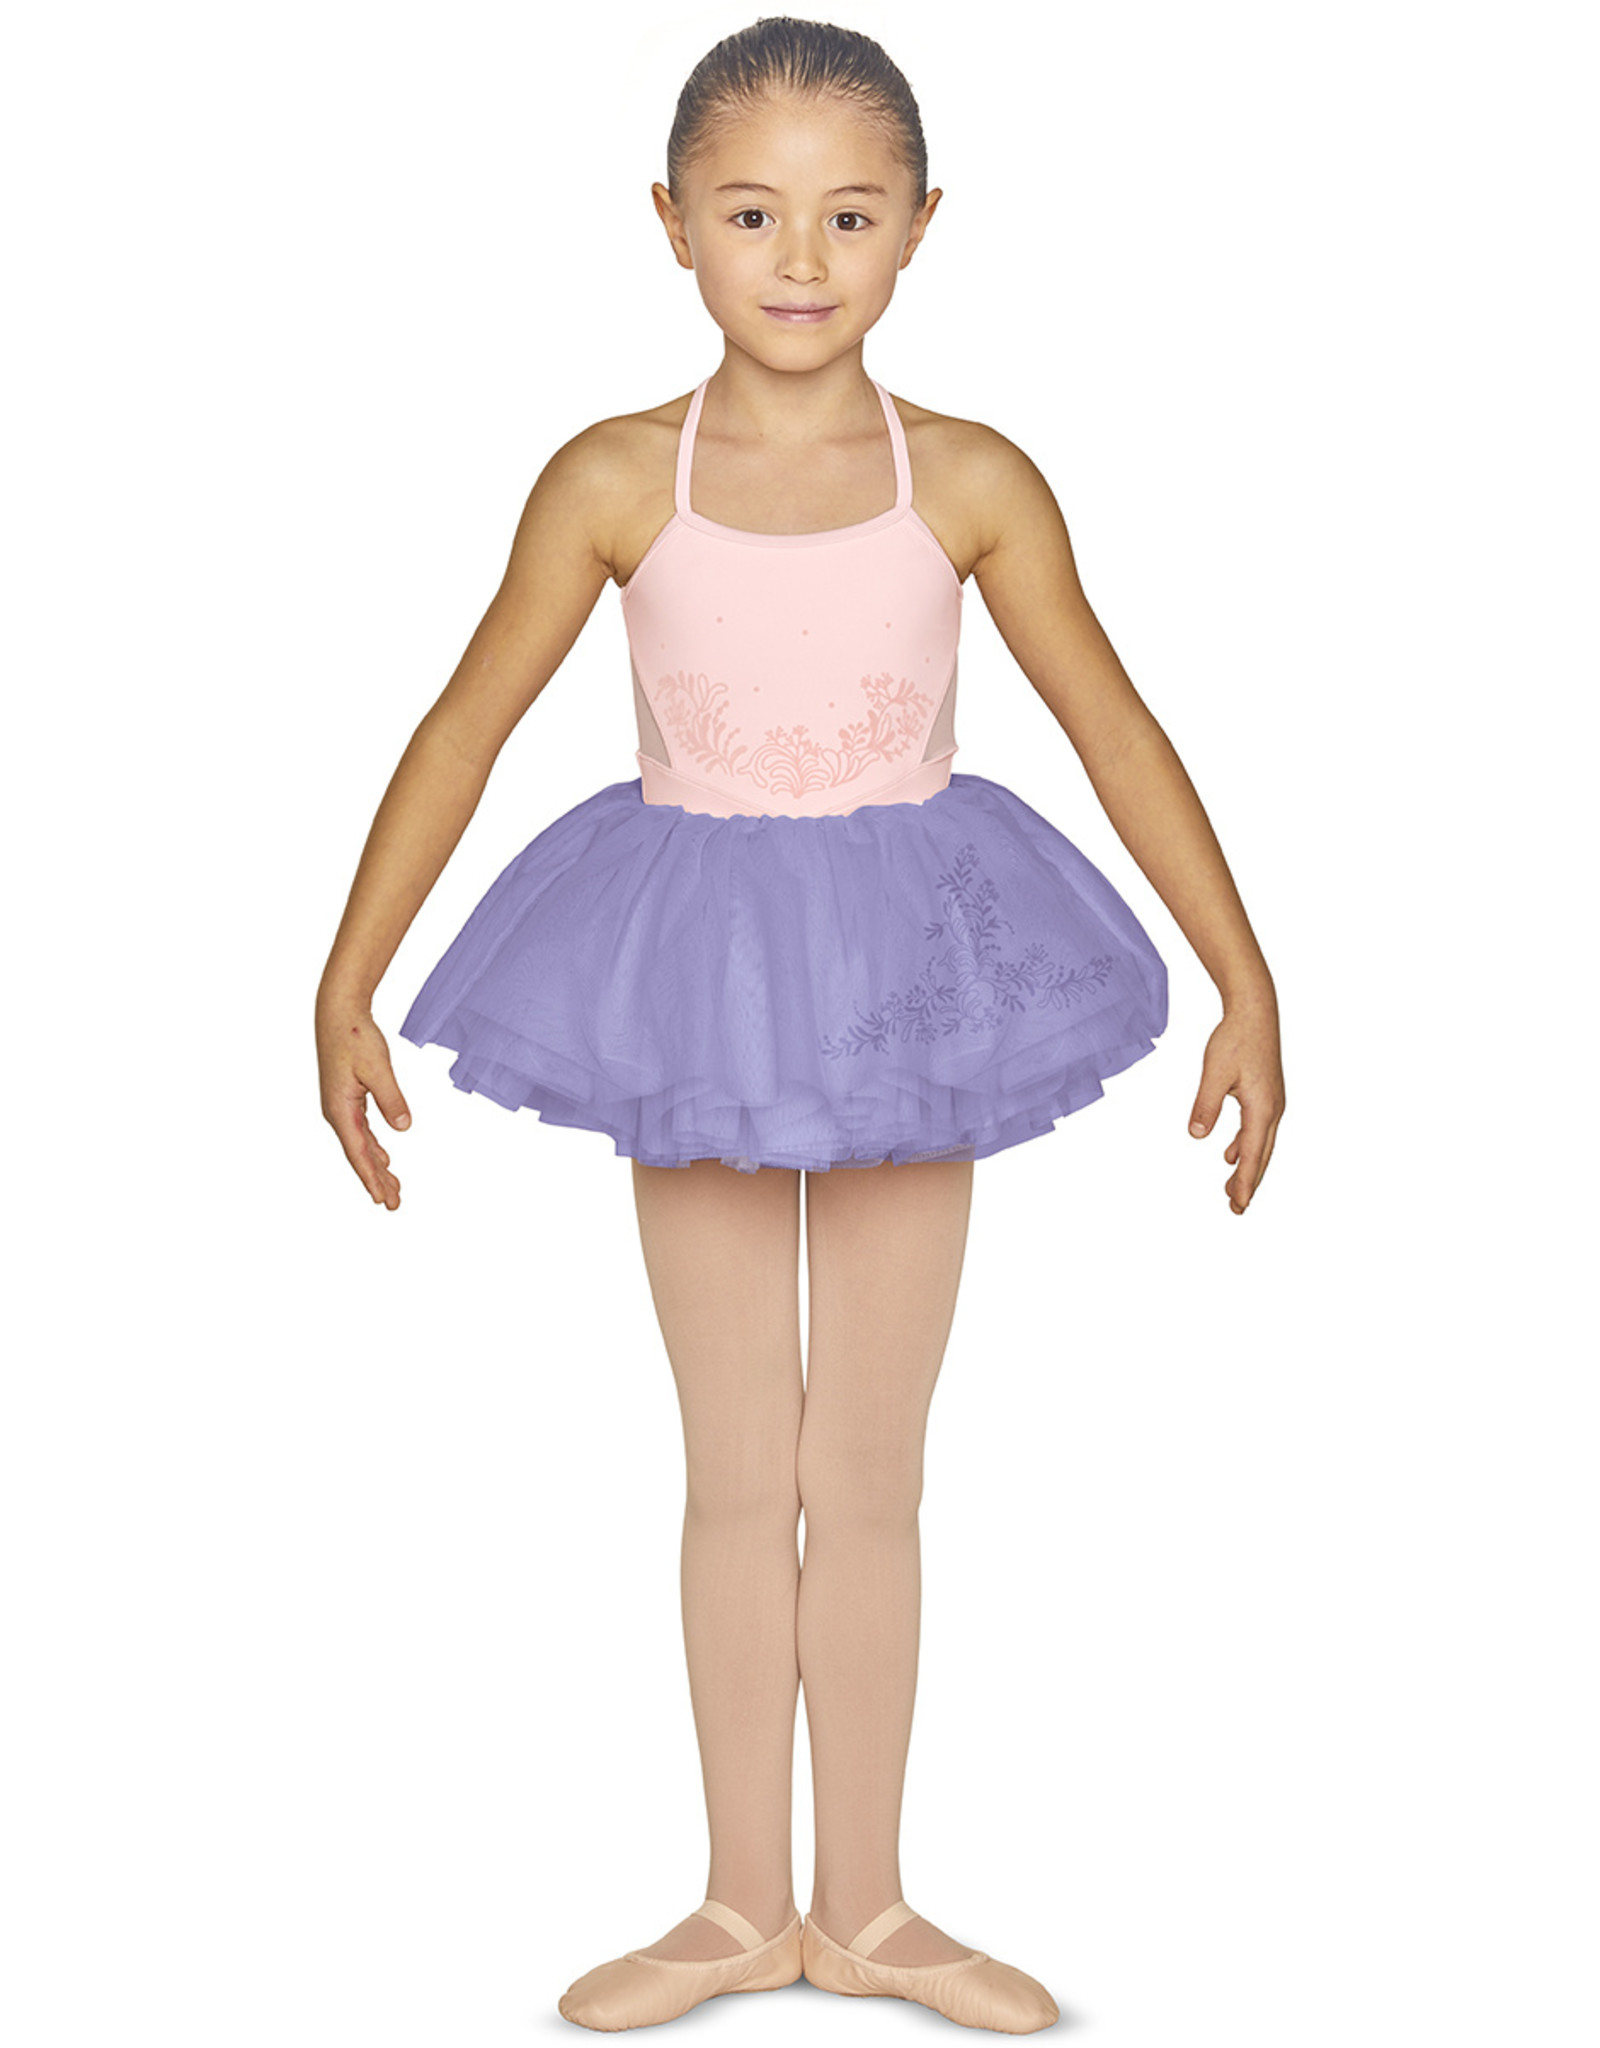 Bloch Bloch Placement Flock Tutu Skirt - CR9921